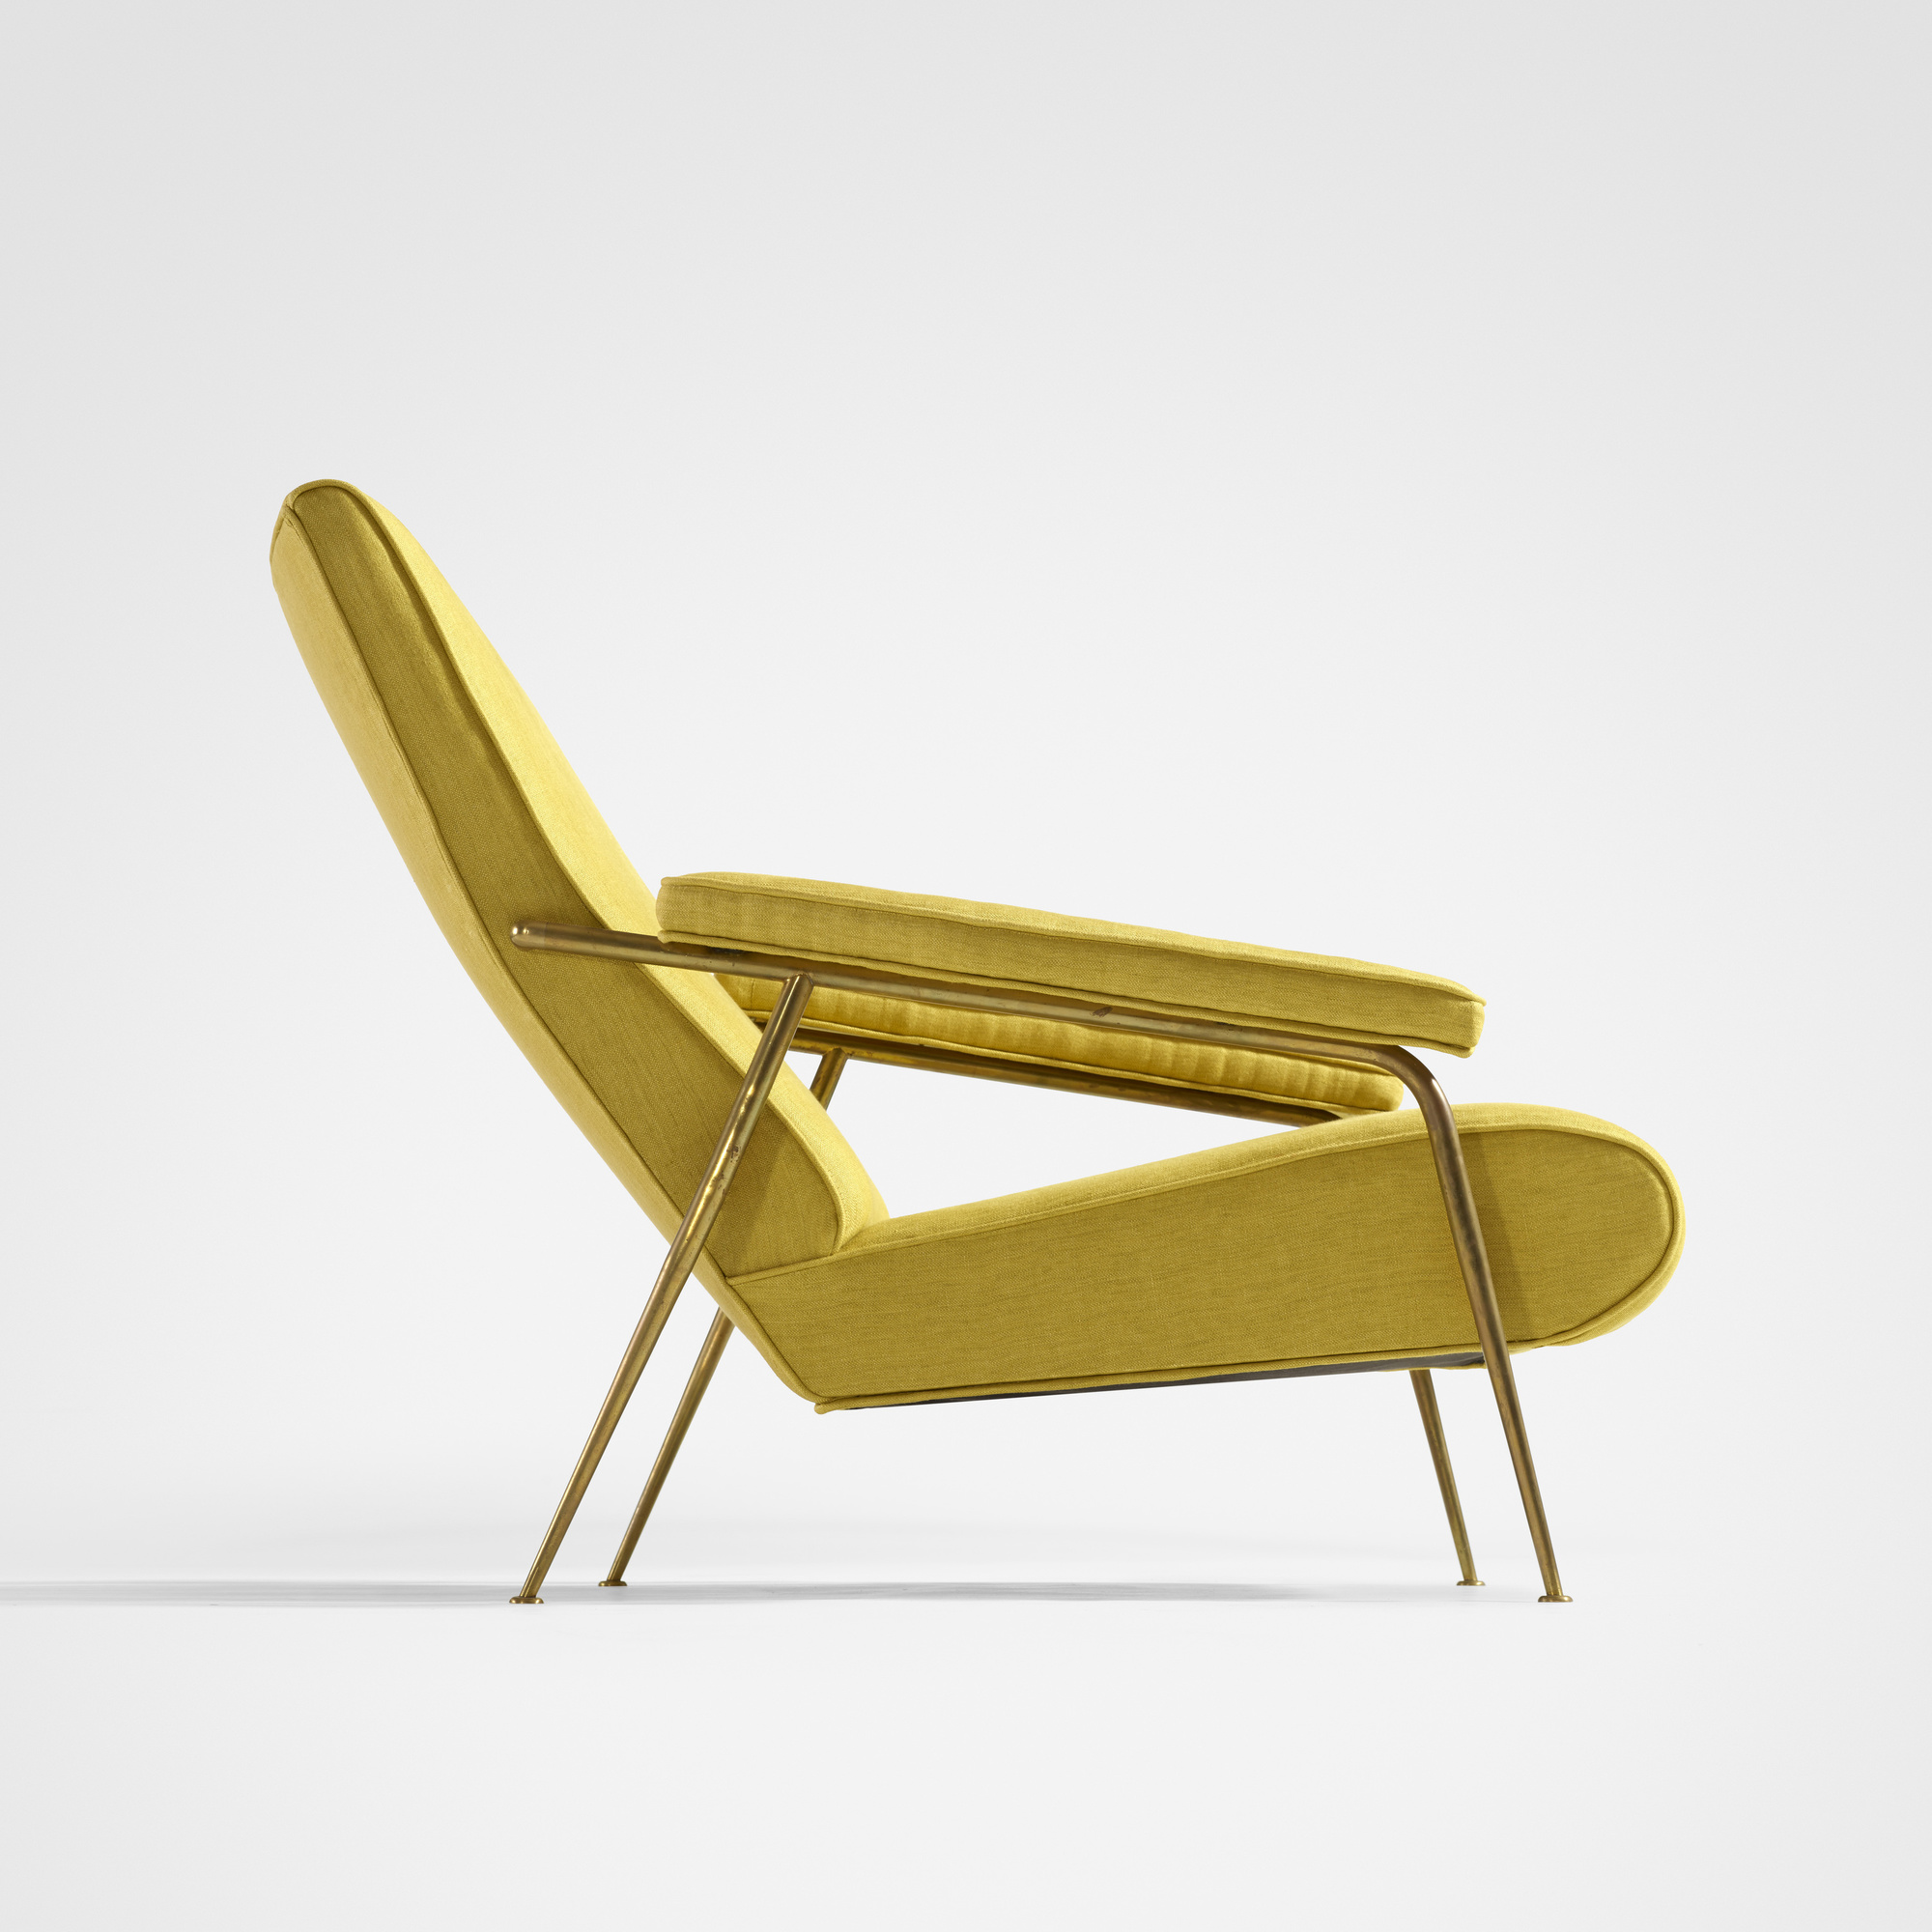 gio ponti chair sure fit wing cover 13 distex lounge design masterworks 19 may 2016 5 of